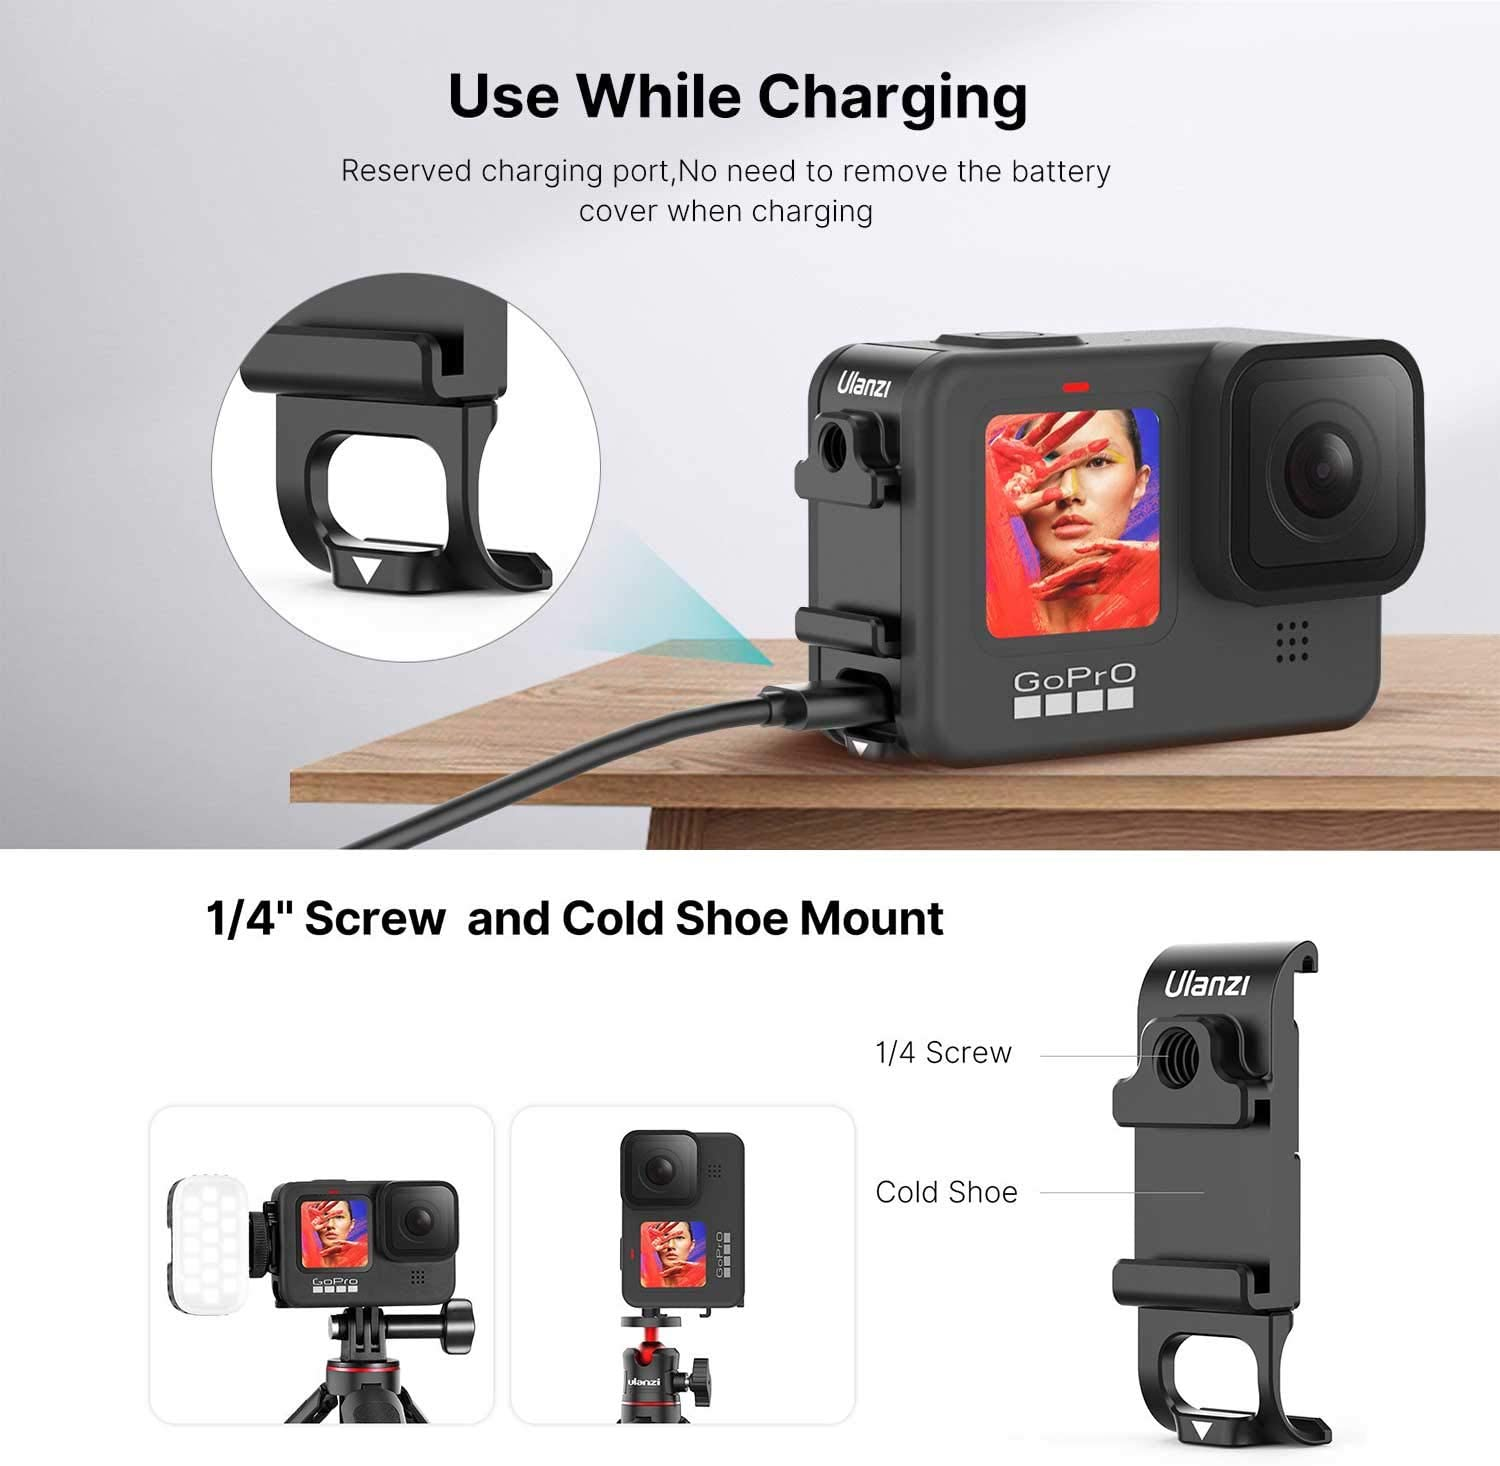 G9-6 Multifunction Battery Cover Door for GoPro HERO9 Black with Cold Shoe Mount /& Open Port for Camera Charging